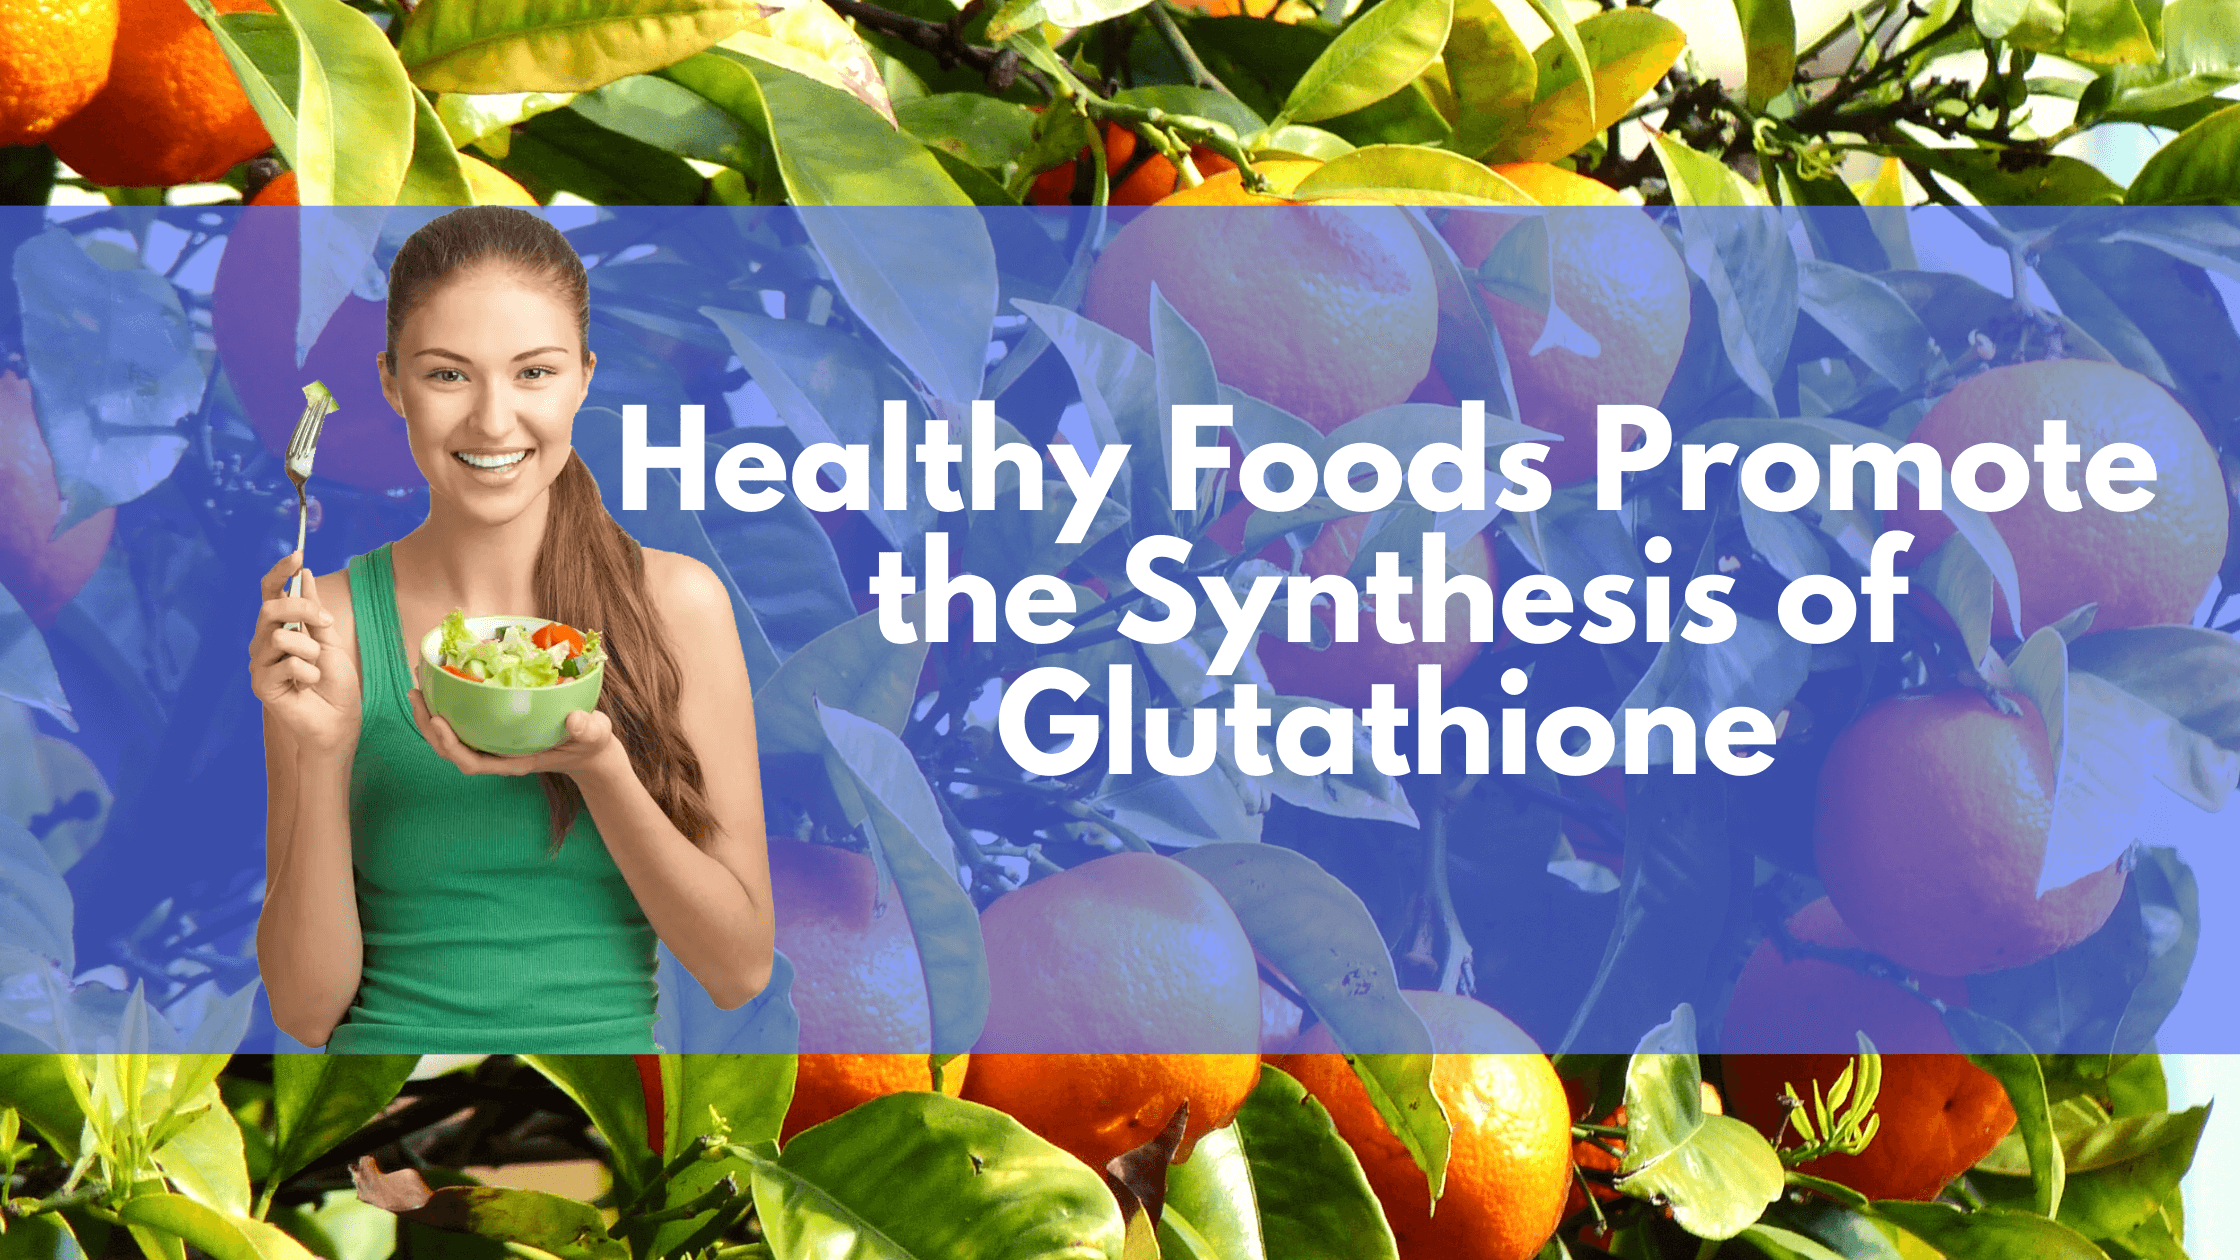 Healthy Foods Promote the Synthesis of Glutathione